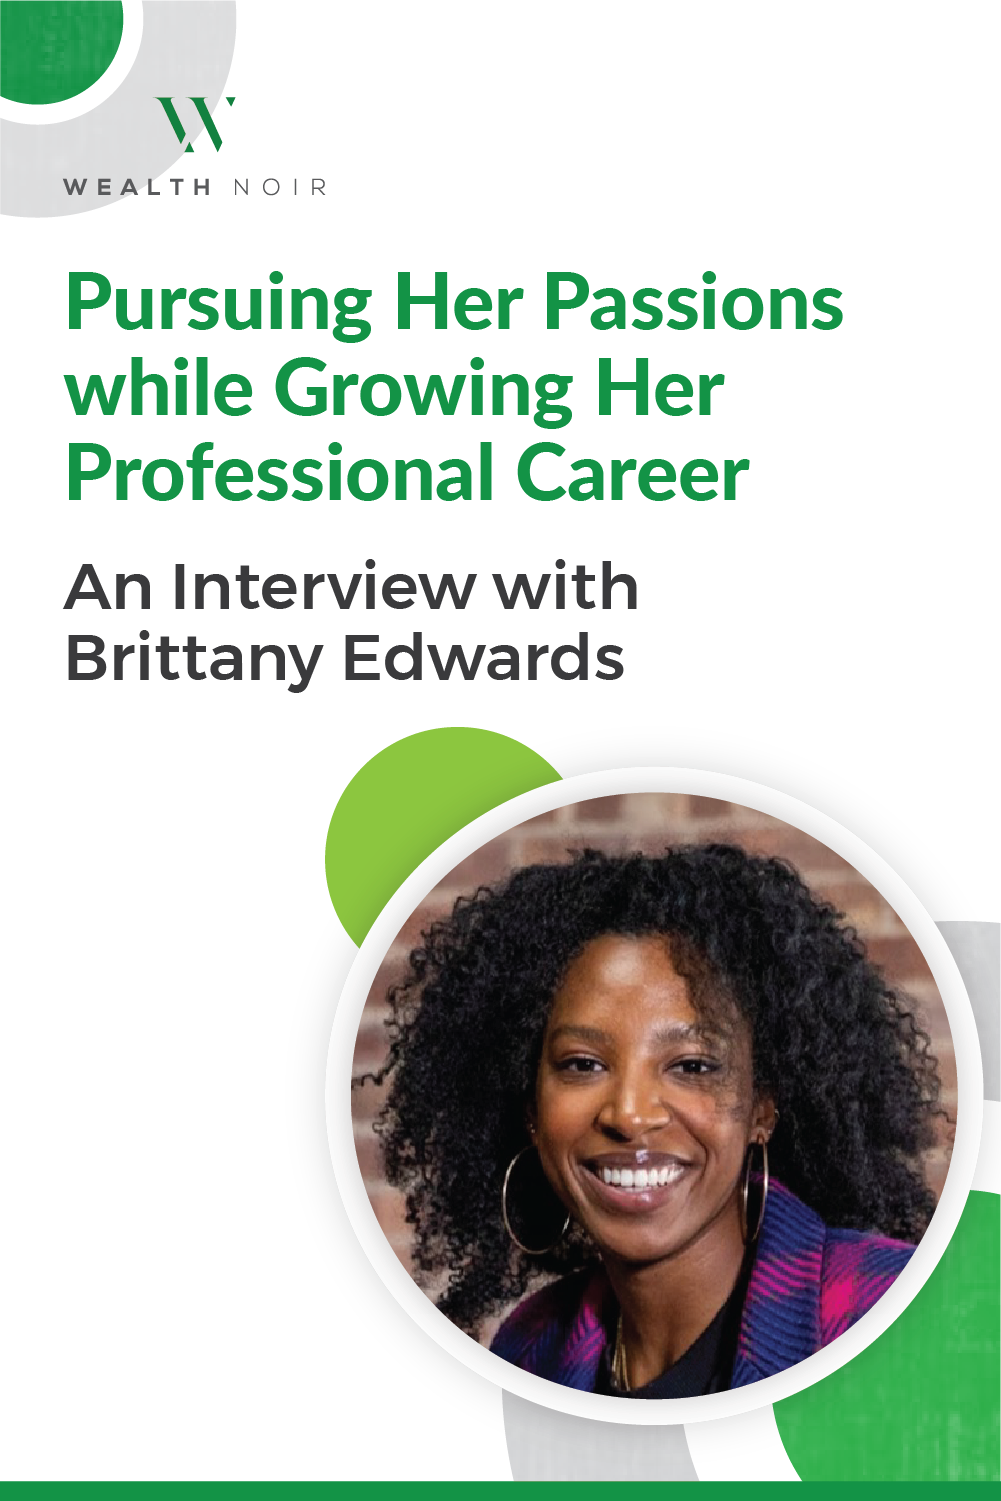 Pursuing Her Passions while Growing Her Professional Career: An Interview with Brittany Edwards